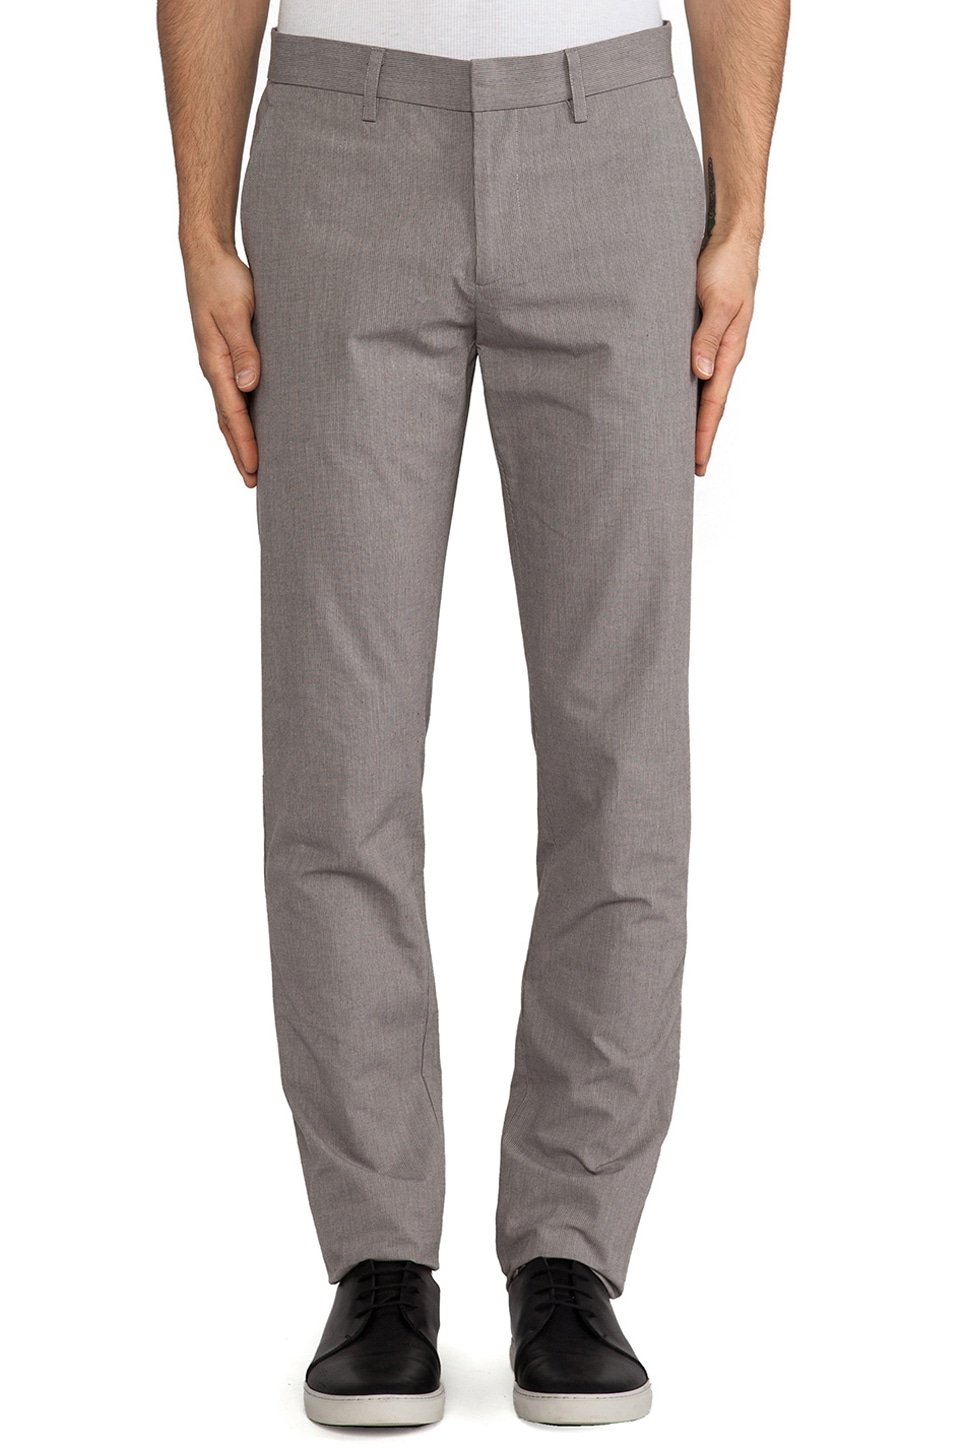 Shades of Grey by Micah Cohen Slim Fit Suit Pant in Slate Stripe